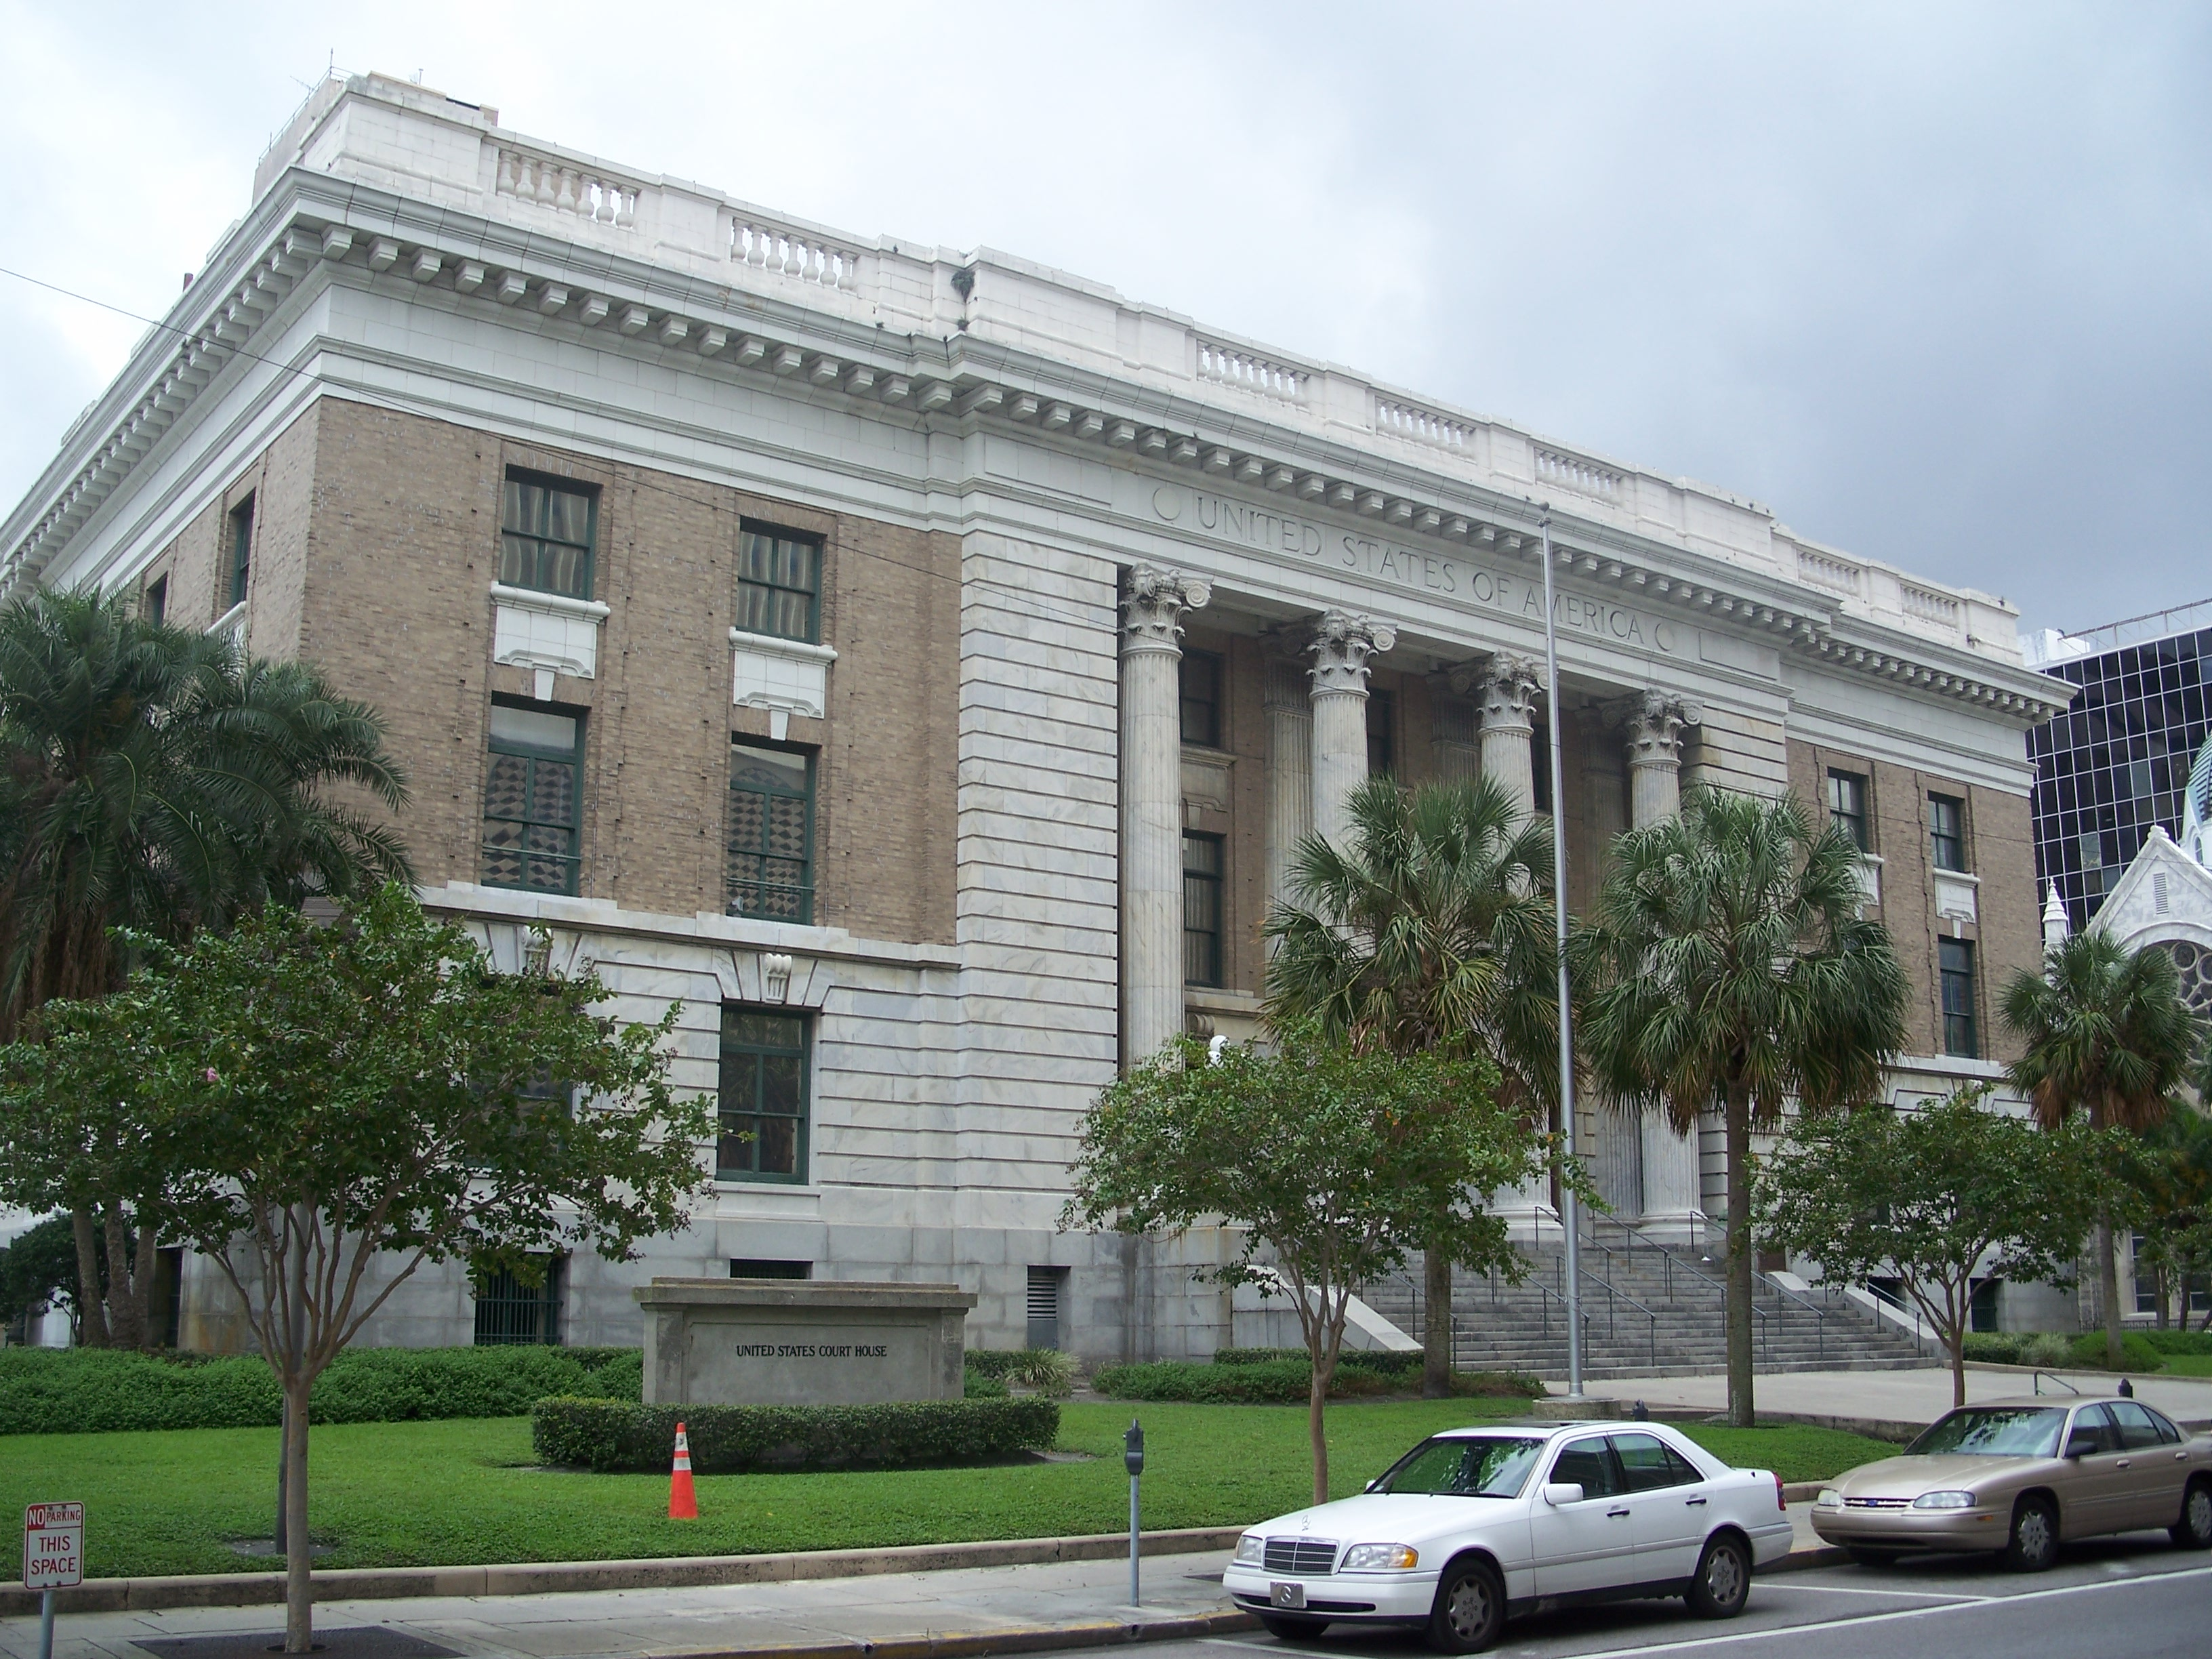 Tampa Federal Courthouse as it looks today